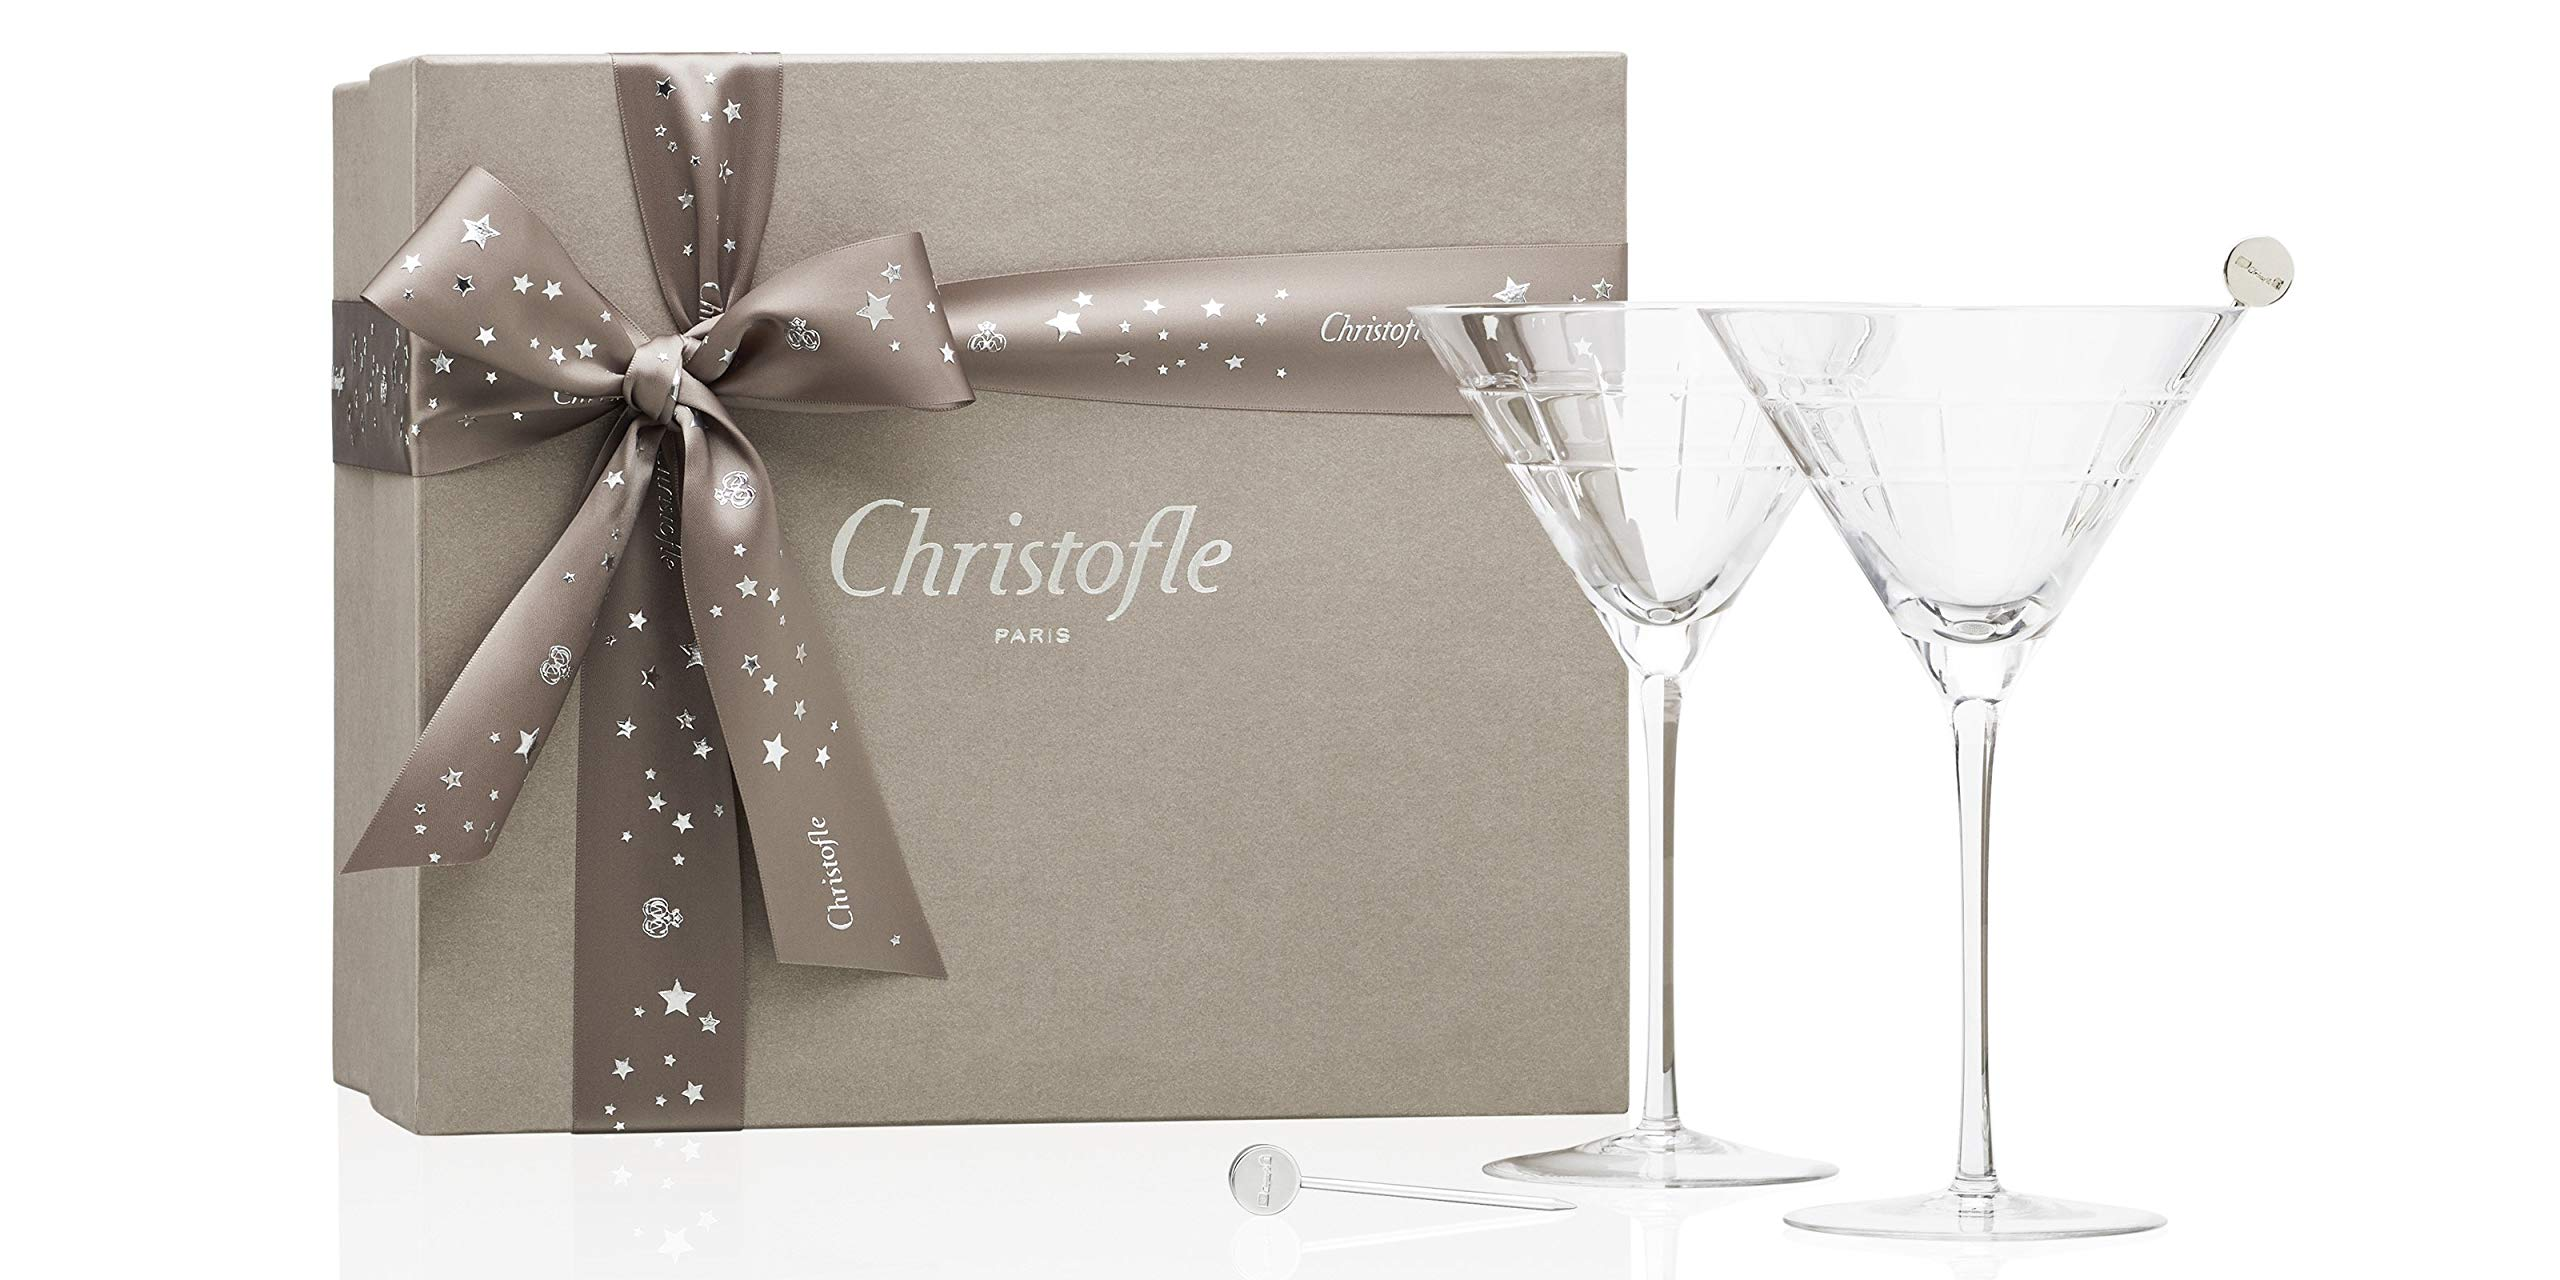 Christofle Gift Box Set of 2 Graphik Crystal Martini Glasses & 2 Silver-Plated Cocktail Sticks #7945282